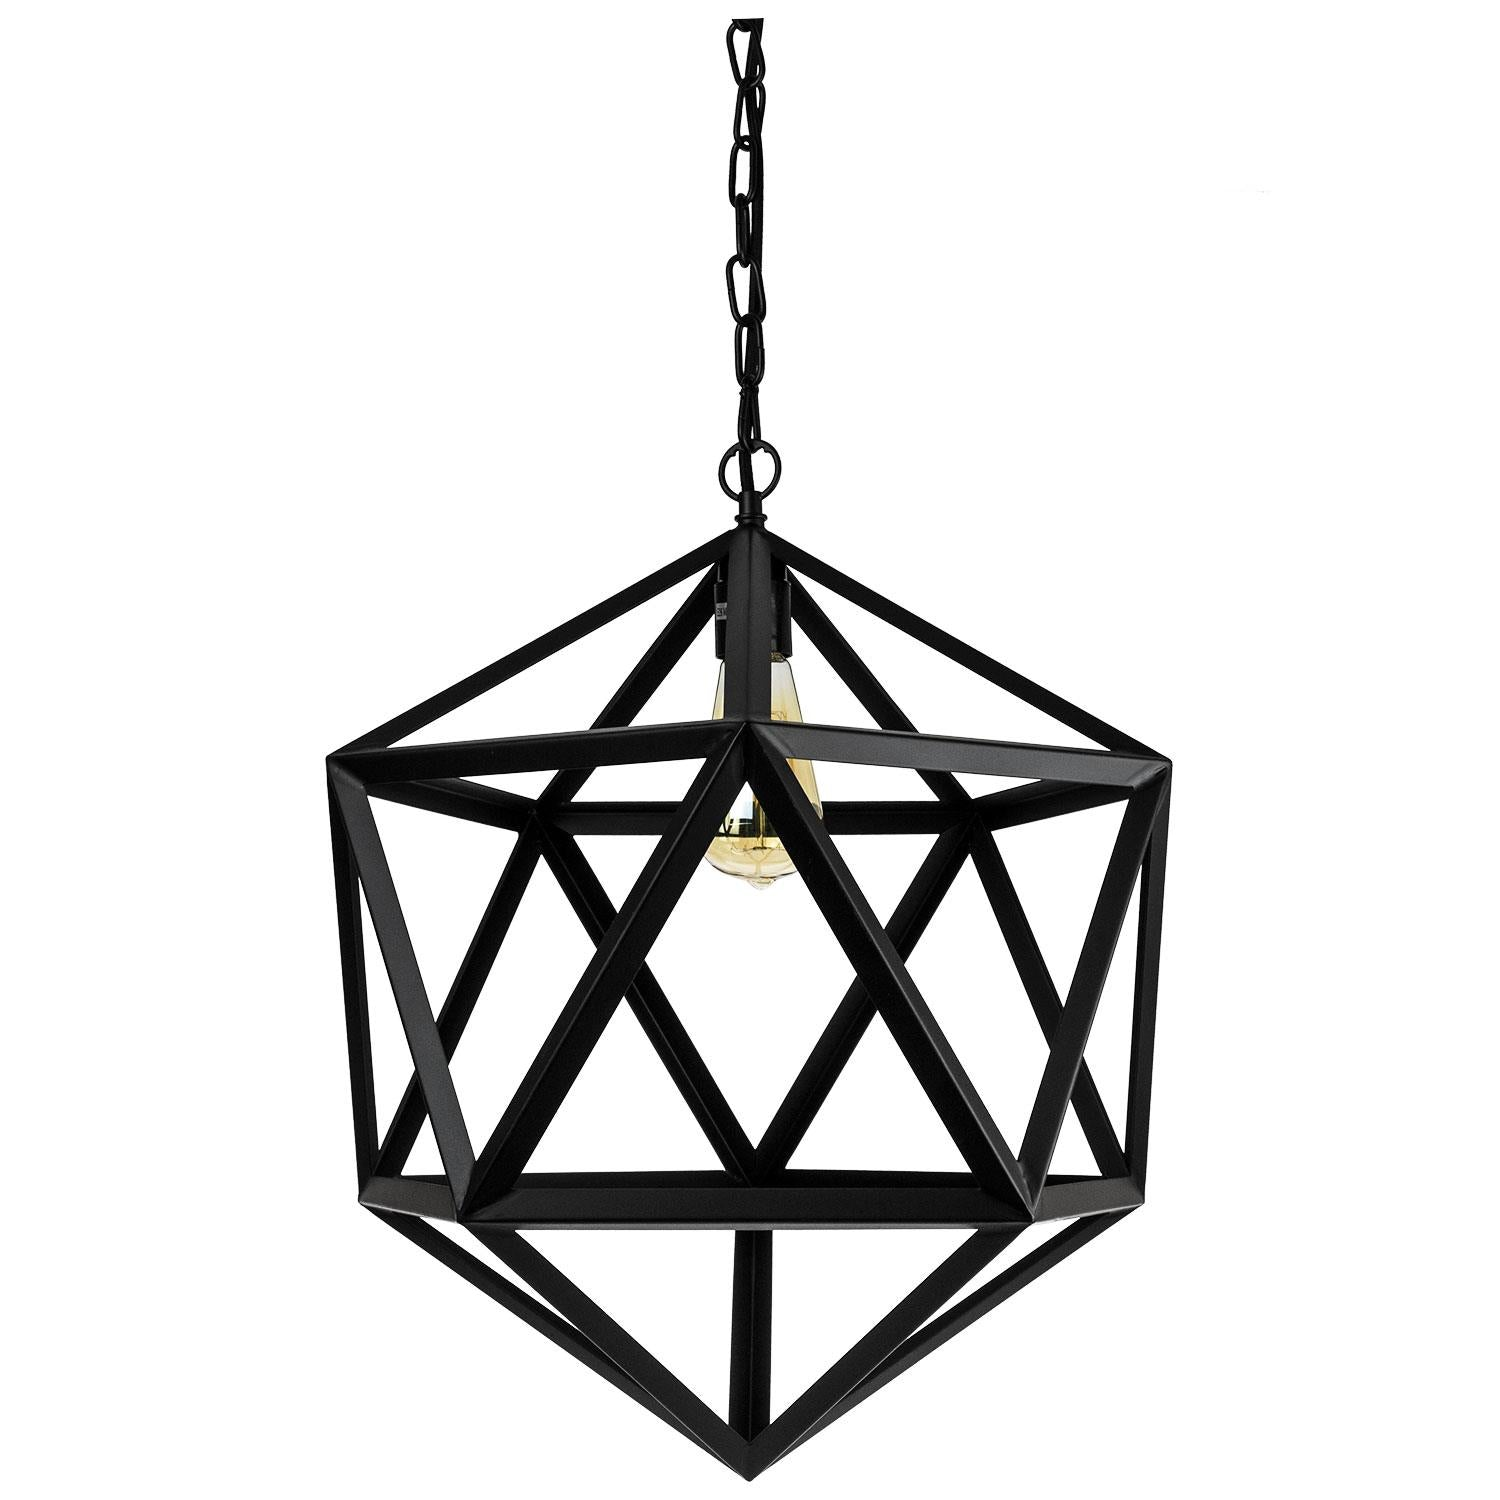 SUNLITE E26 Hexagon Matt Black Pendant Light Fixture